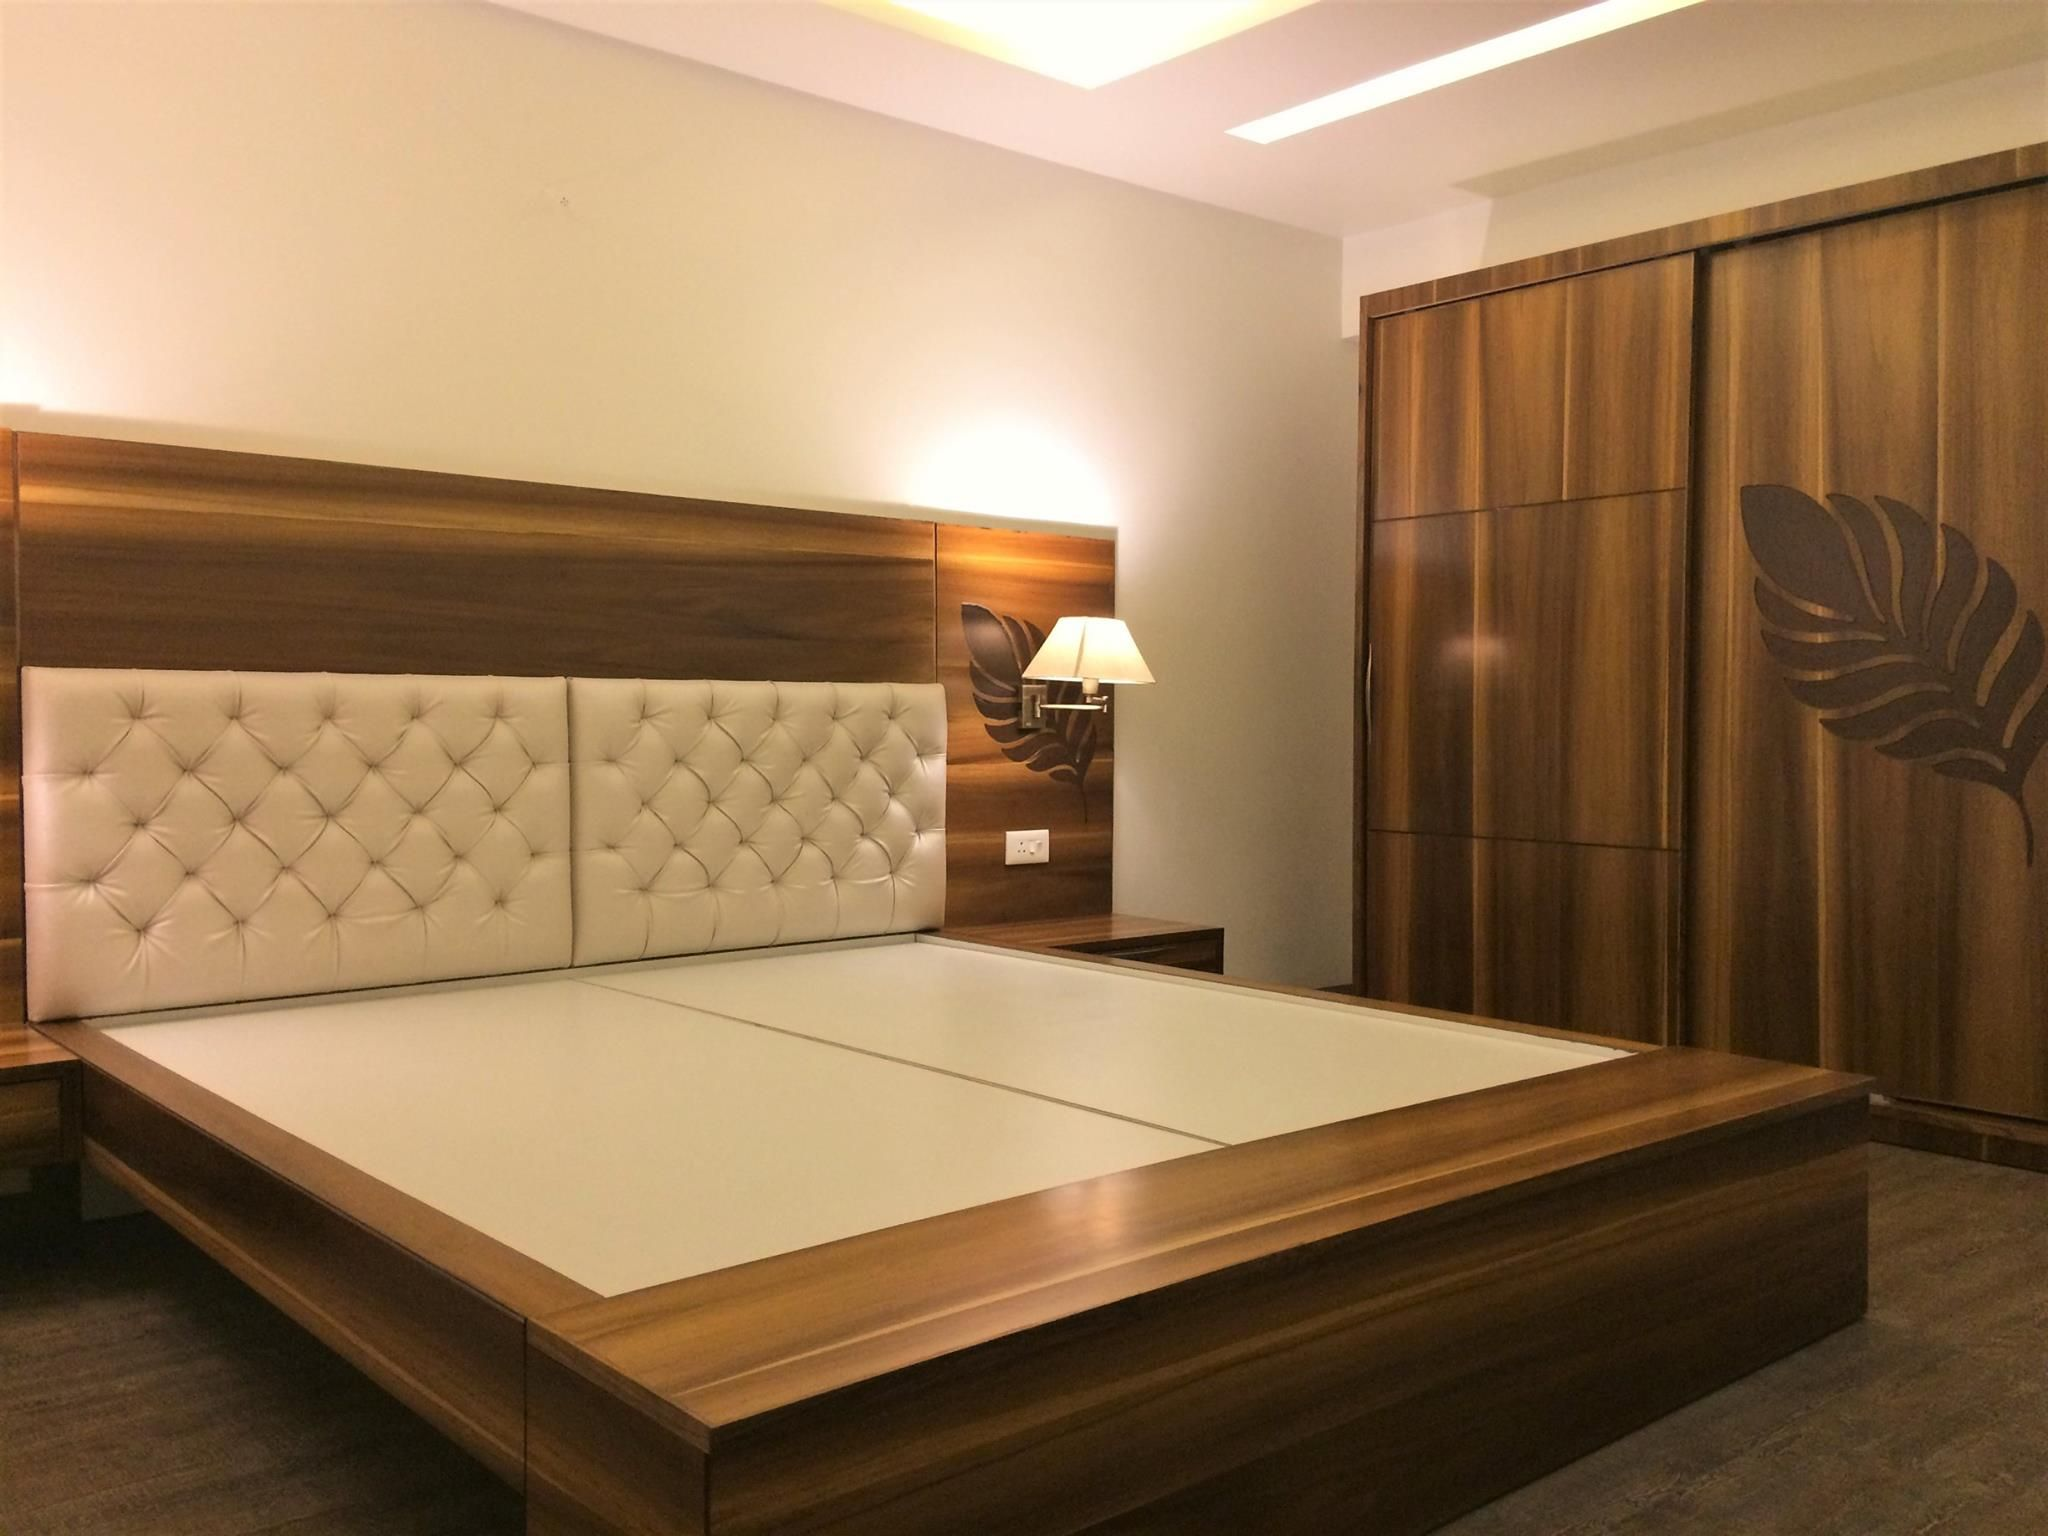 200 Bedroom Designs The Architects Diary Bed Furniture Design Bedroom Furniture Design Bed Design Modern